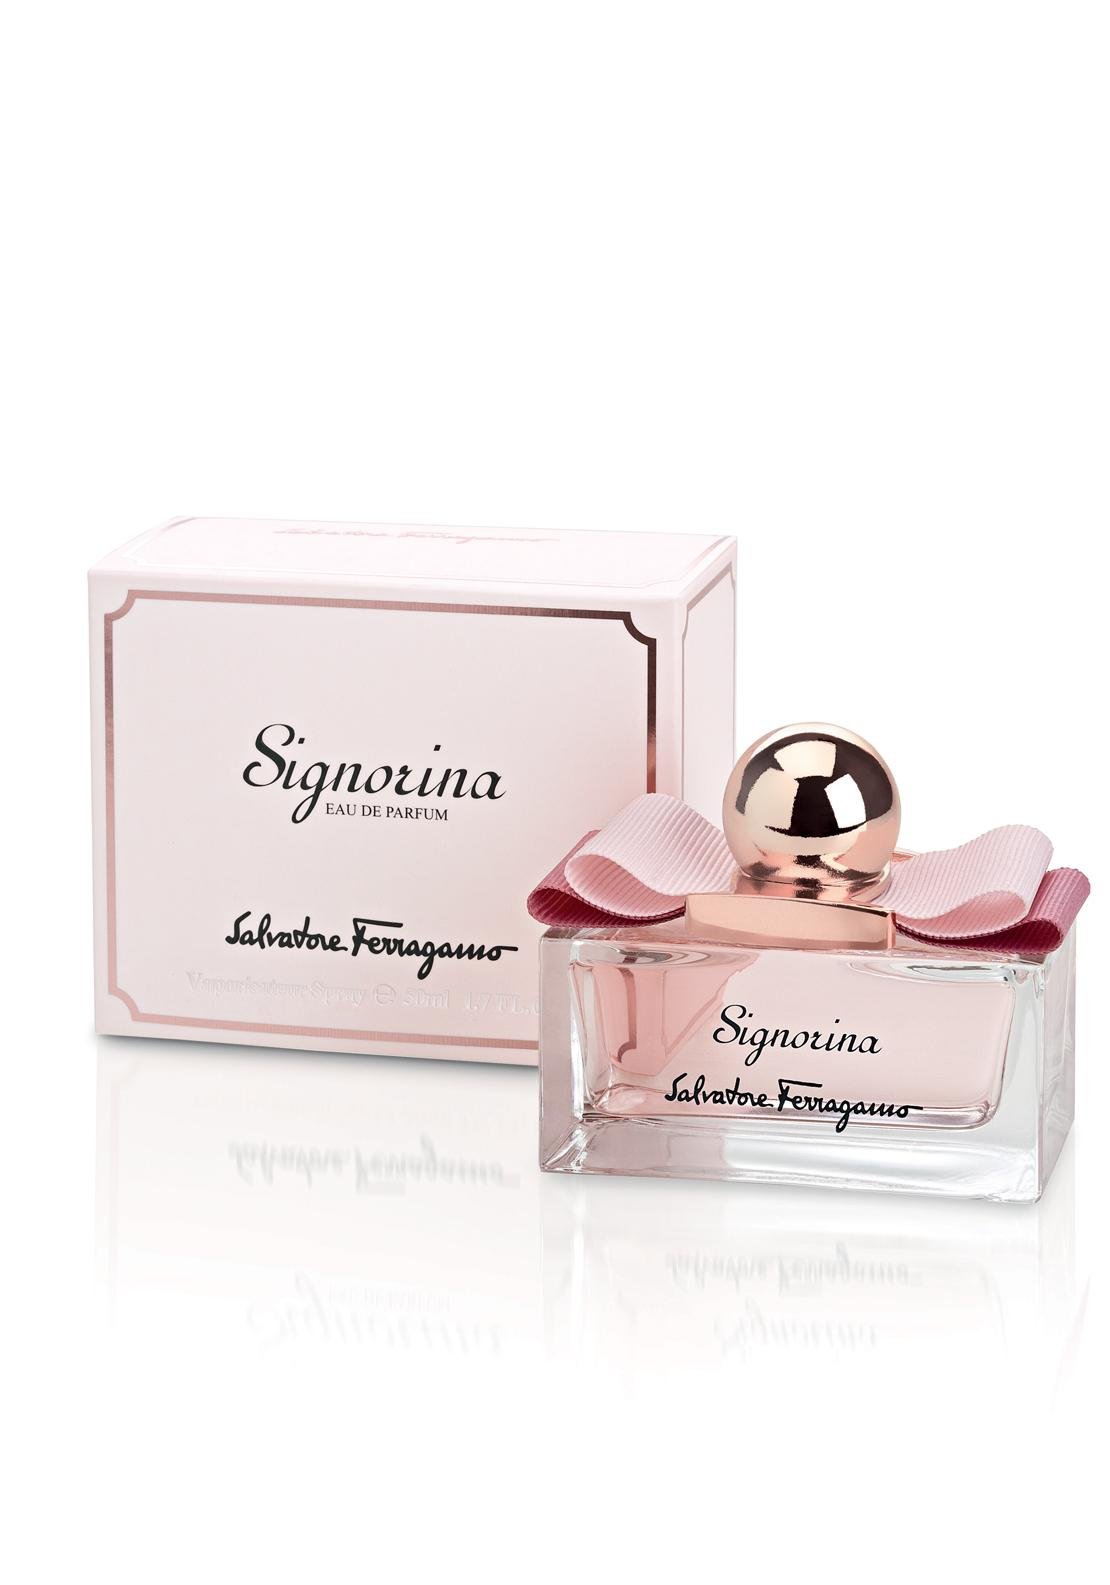 Salvatore Ferragamo Signorina Eau de Parfum For Women, 30ml